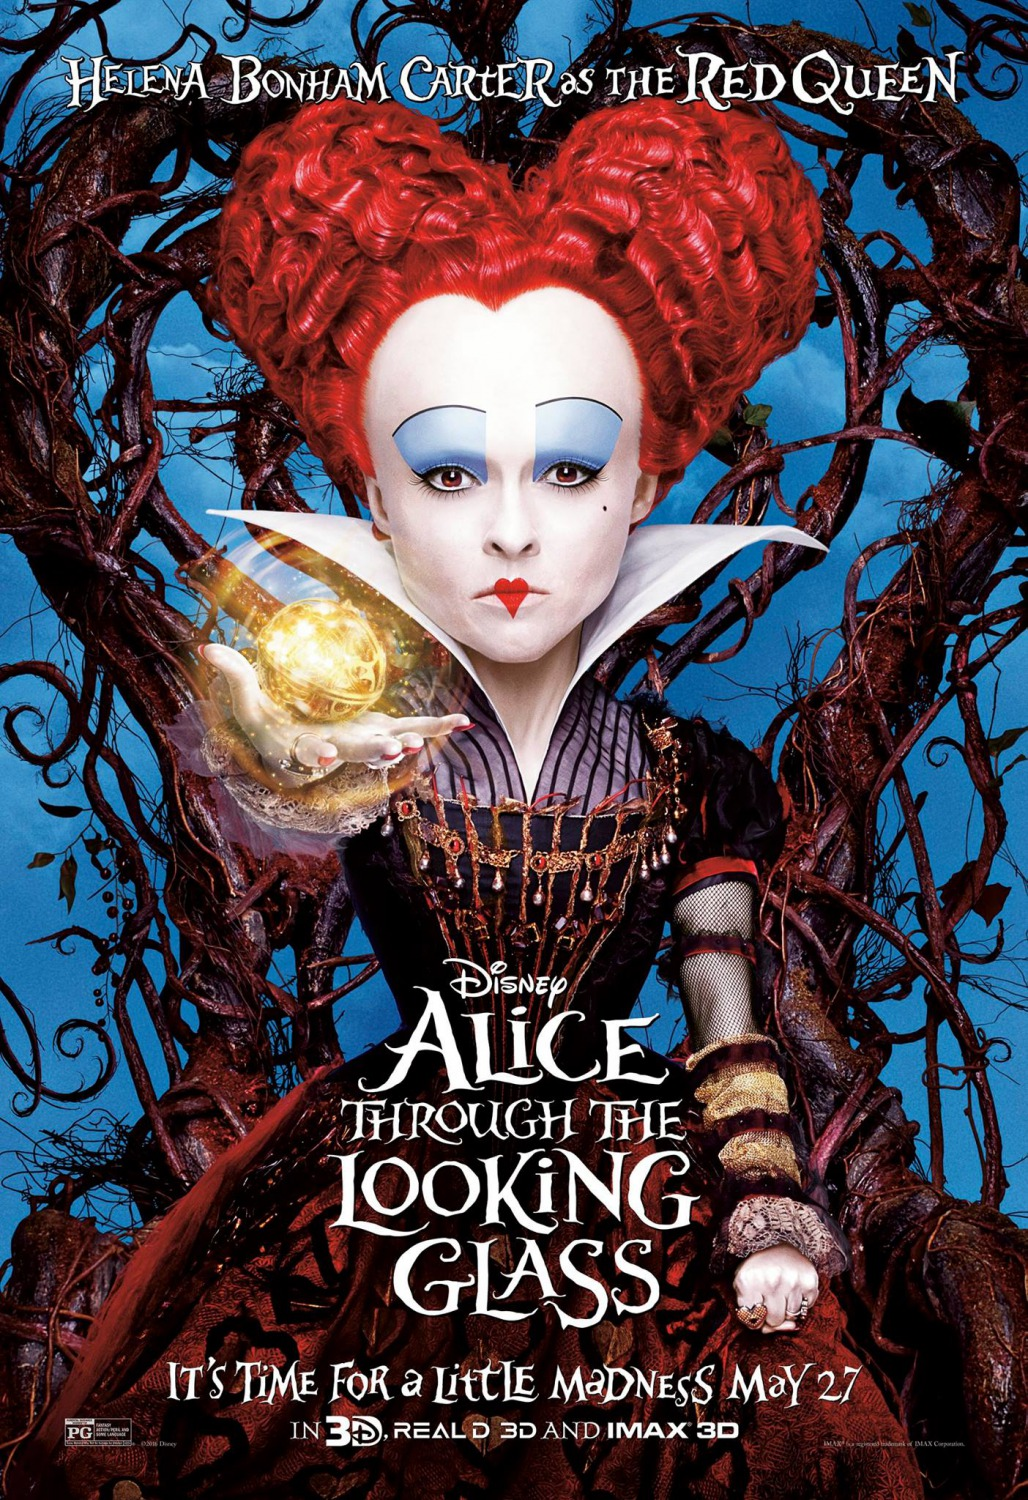 alice-through-the-looking-glass-film-poster-3